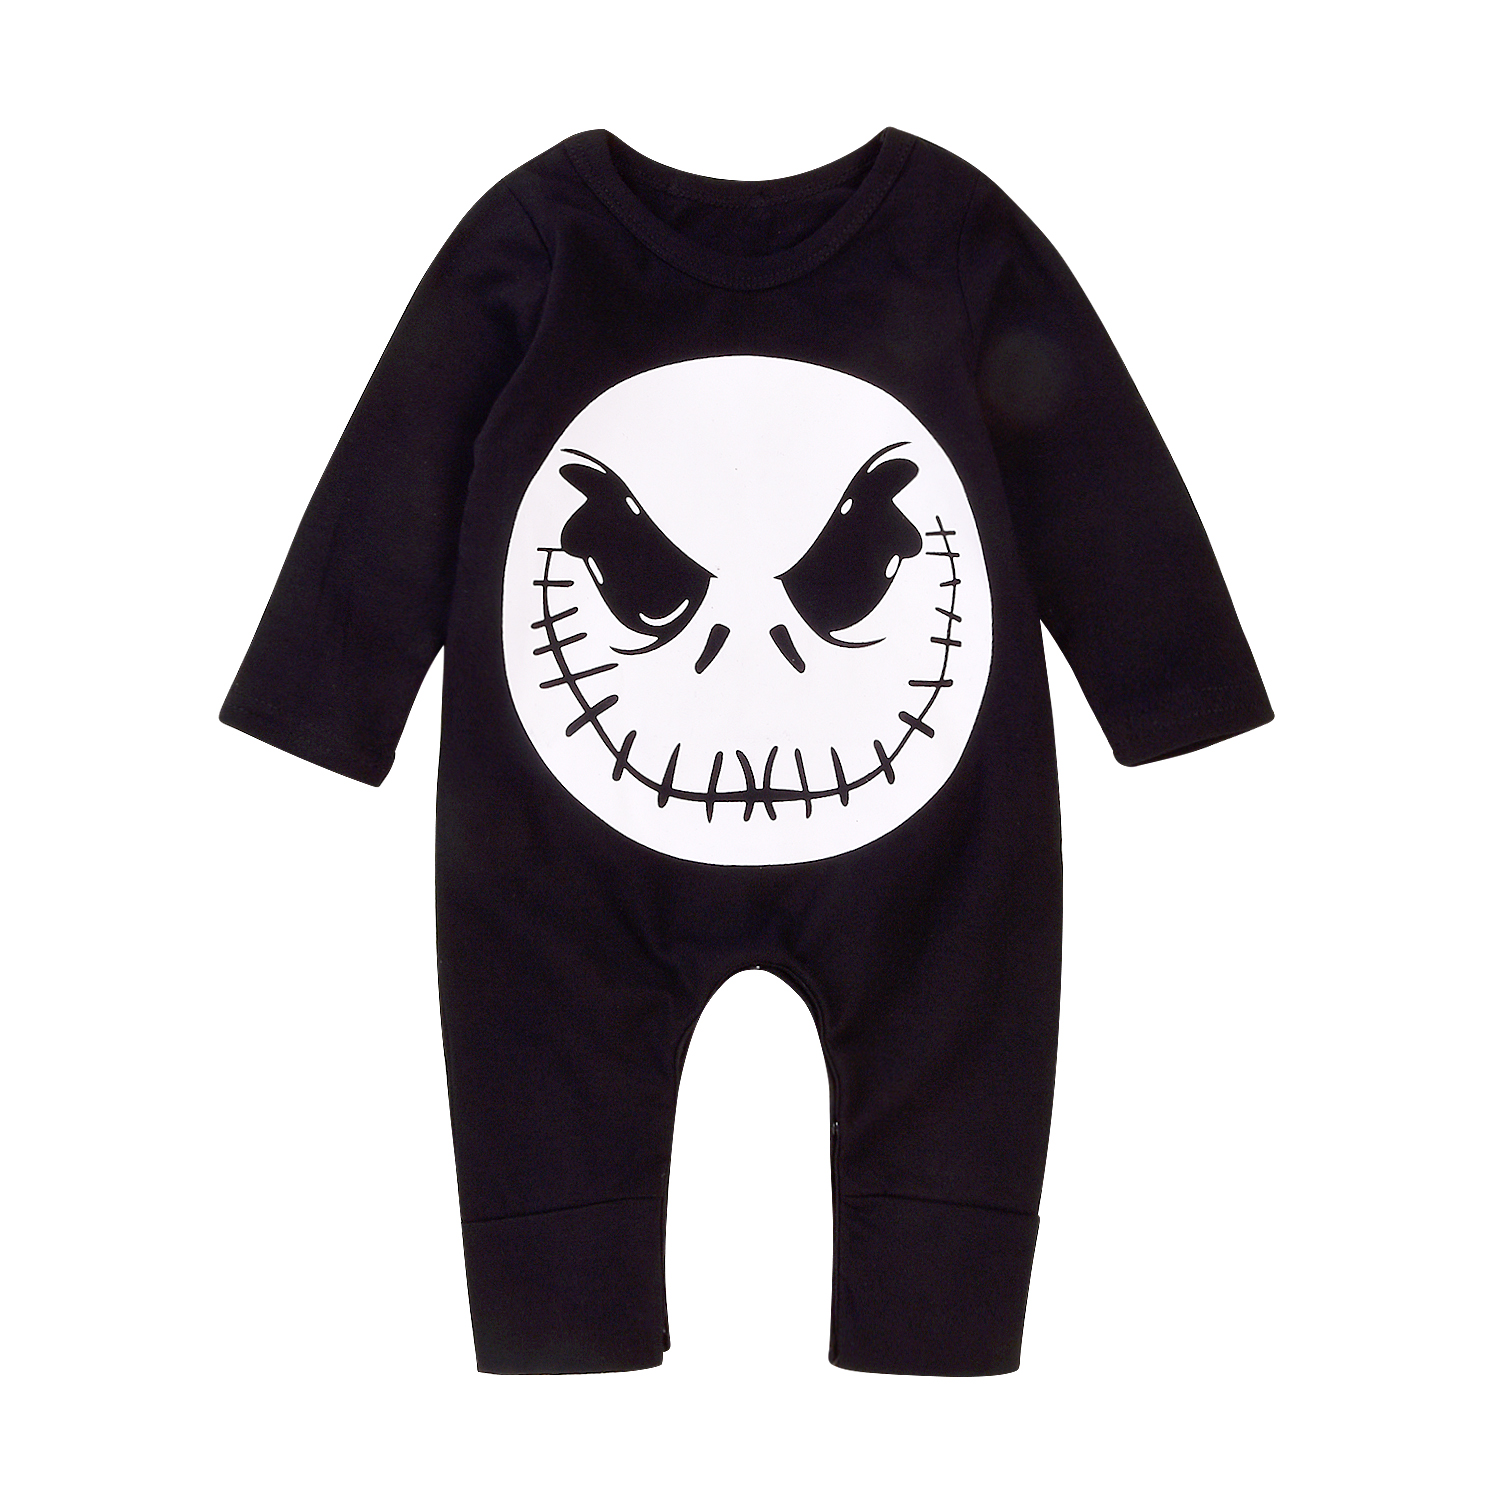 17 Cute Baby Boy Girls Halloween Romper Cotton Jumpsuit Playsuit Fall Winter Clothes Outfit 0-18M 4